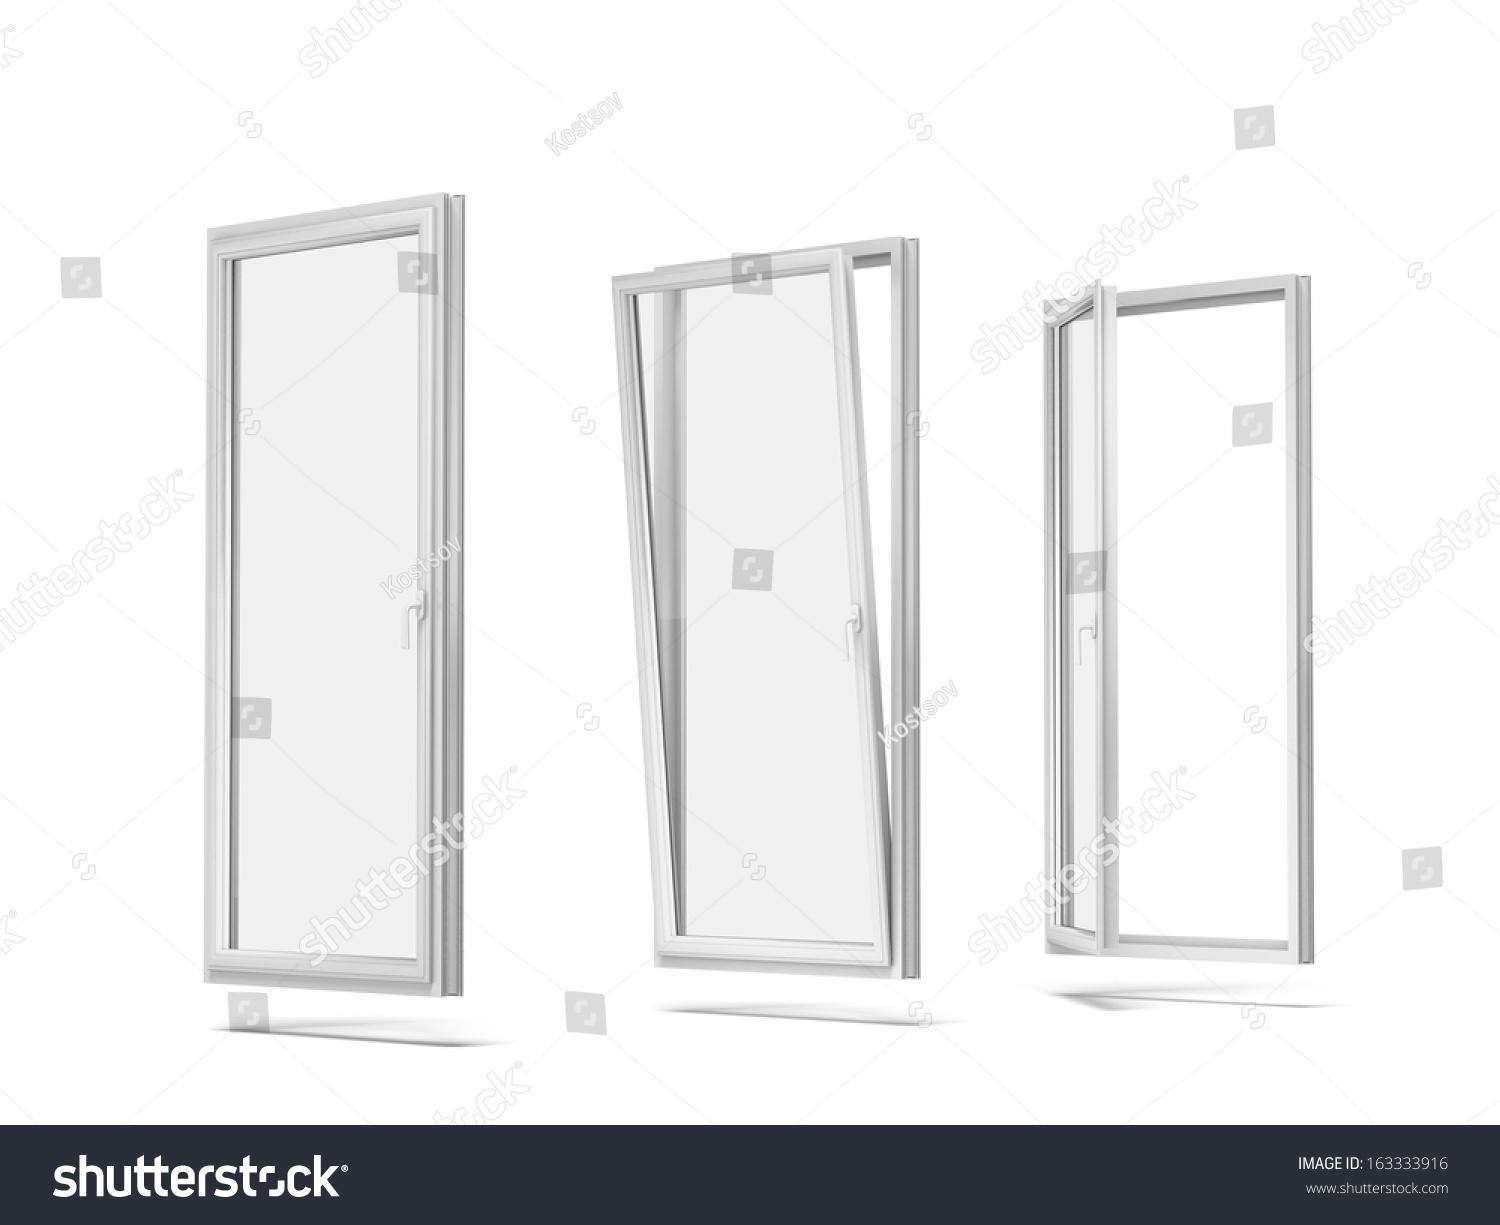 Plastic windows stock photo 163333916 shutterstock for Window plastic